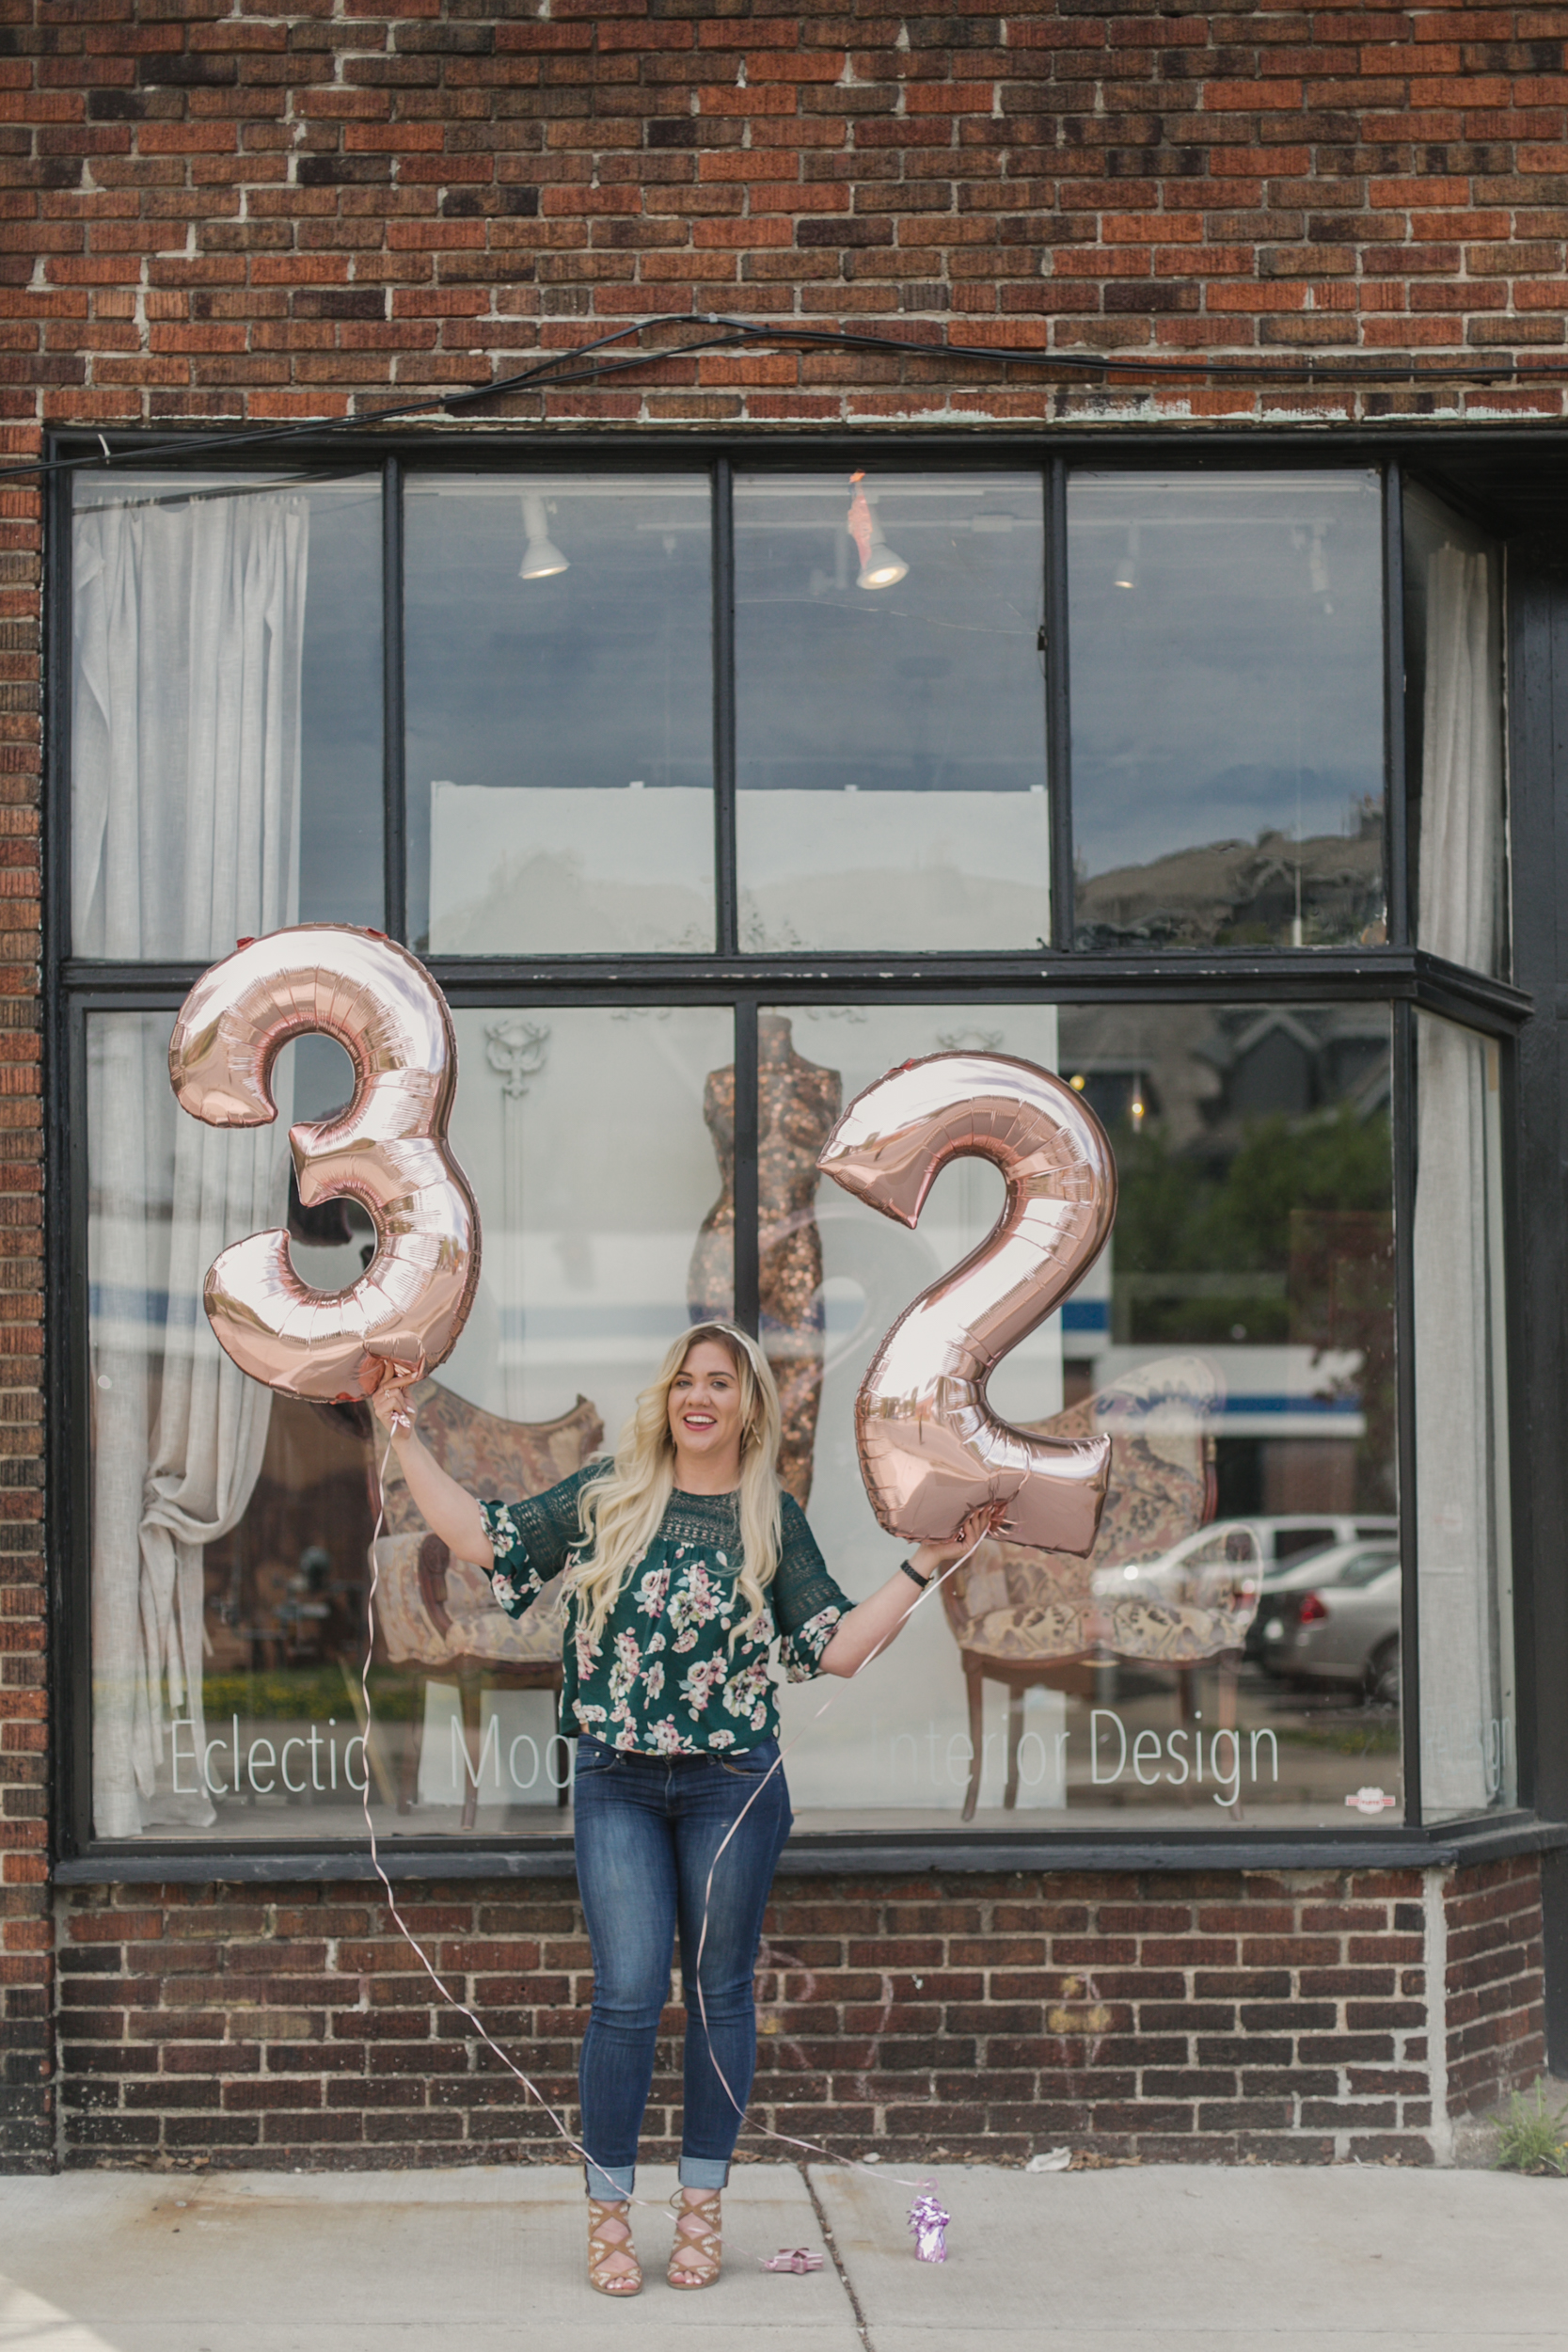 32 things i would tell my younger self, birthday shoot with number ballons, number balloons, rose gold number ballons-www.rachelsmak.com2.jpg